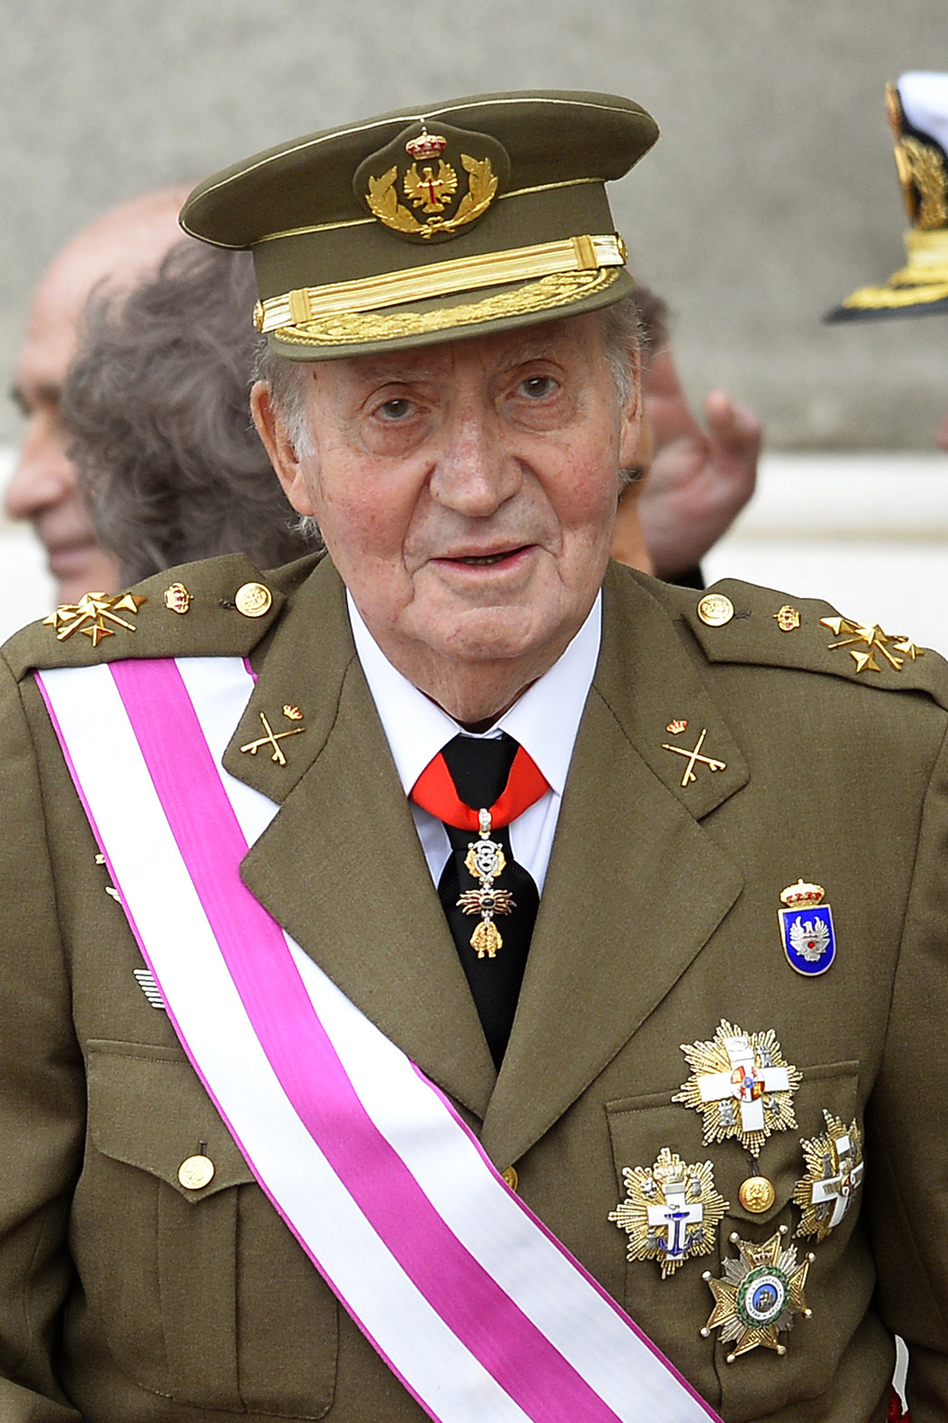 Spain's King Juan Carlos looks on during a ceremony at the royal palace in Madrid on Jan. 6. The royal family has come under increasing criticism for its spending habits as Spain has endured an economic crisis. (AFP/Getty Images)